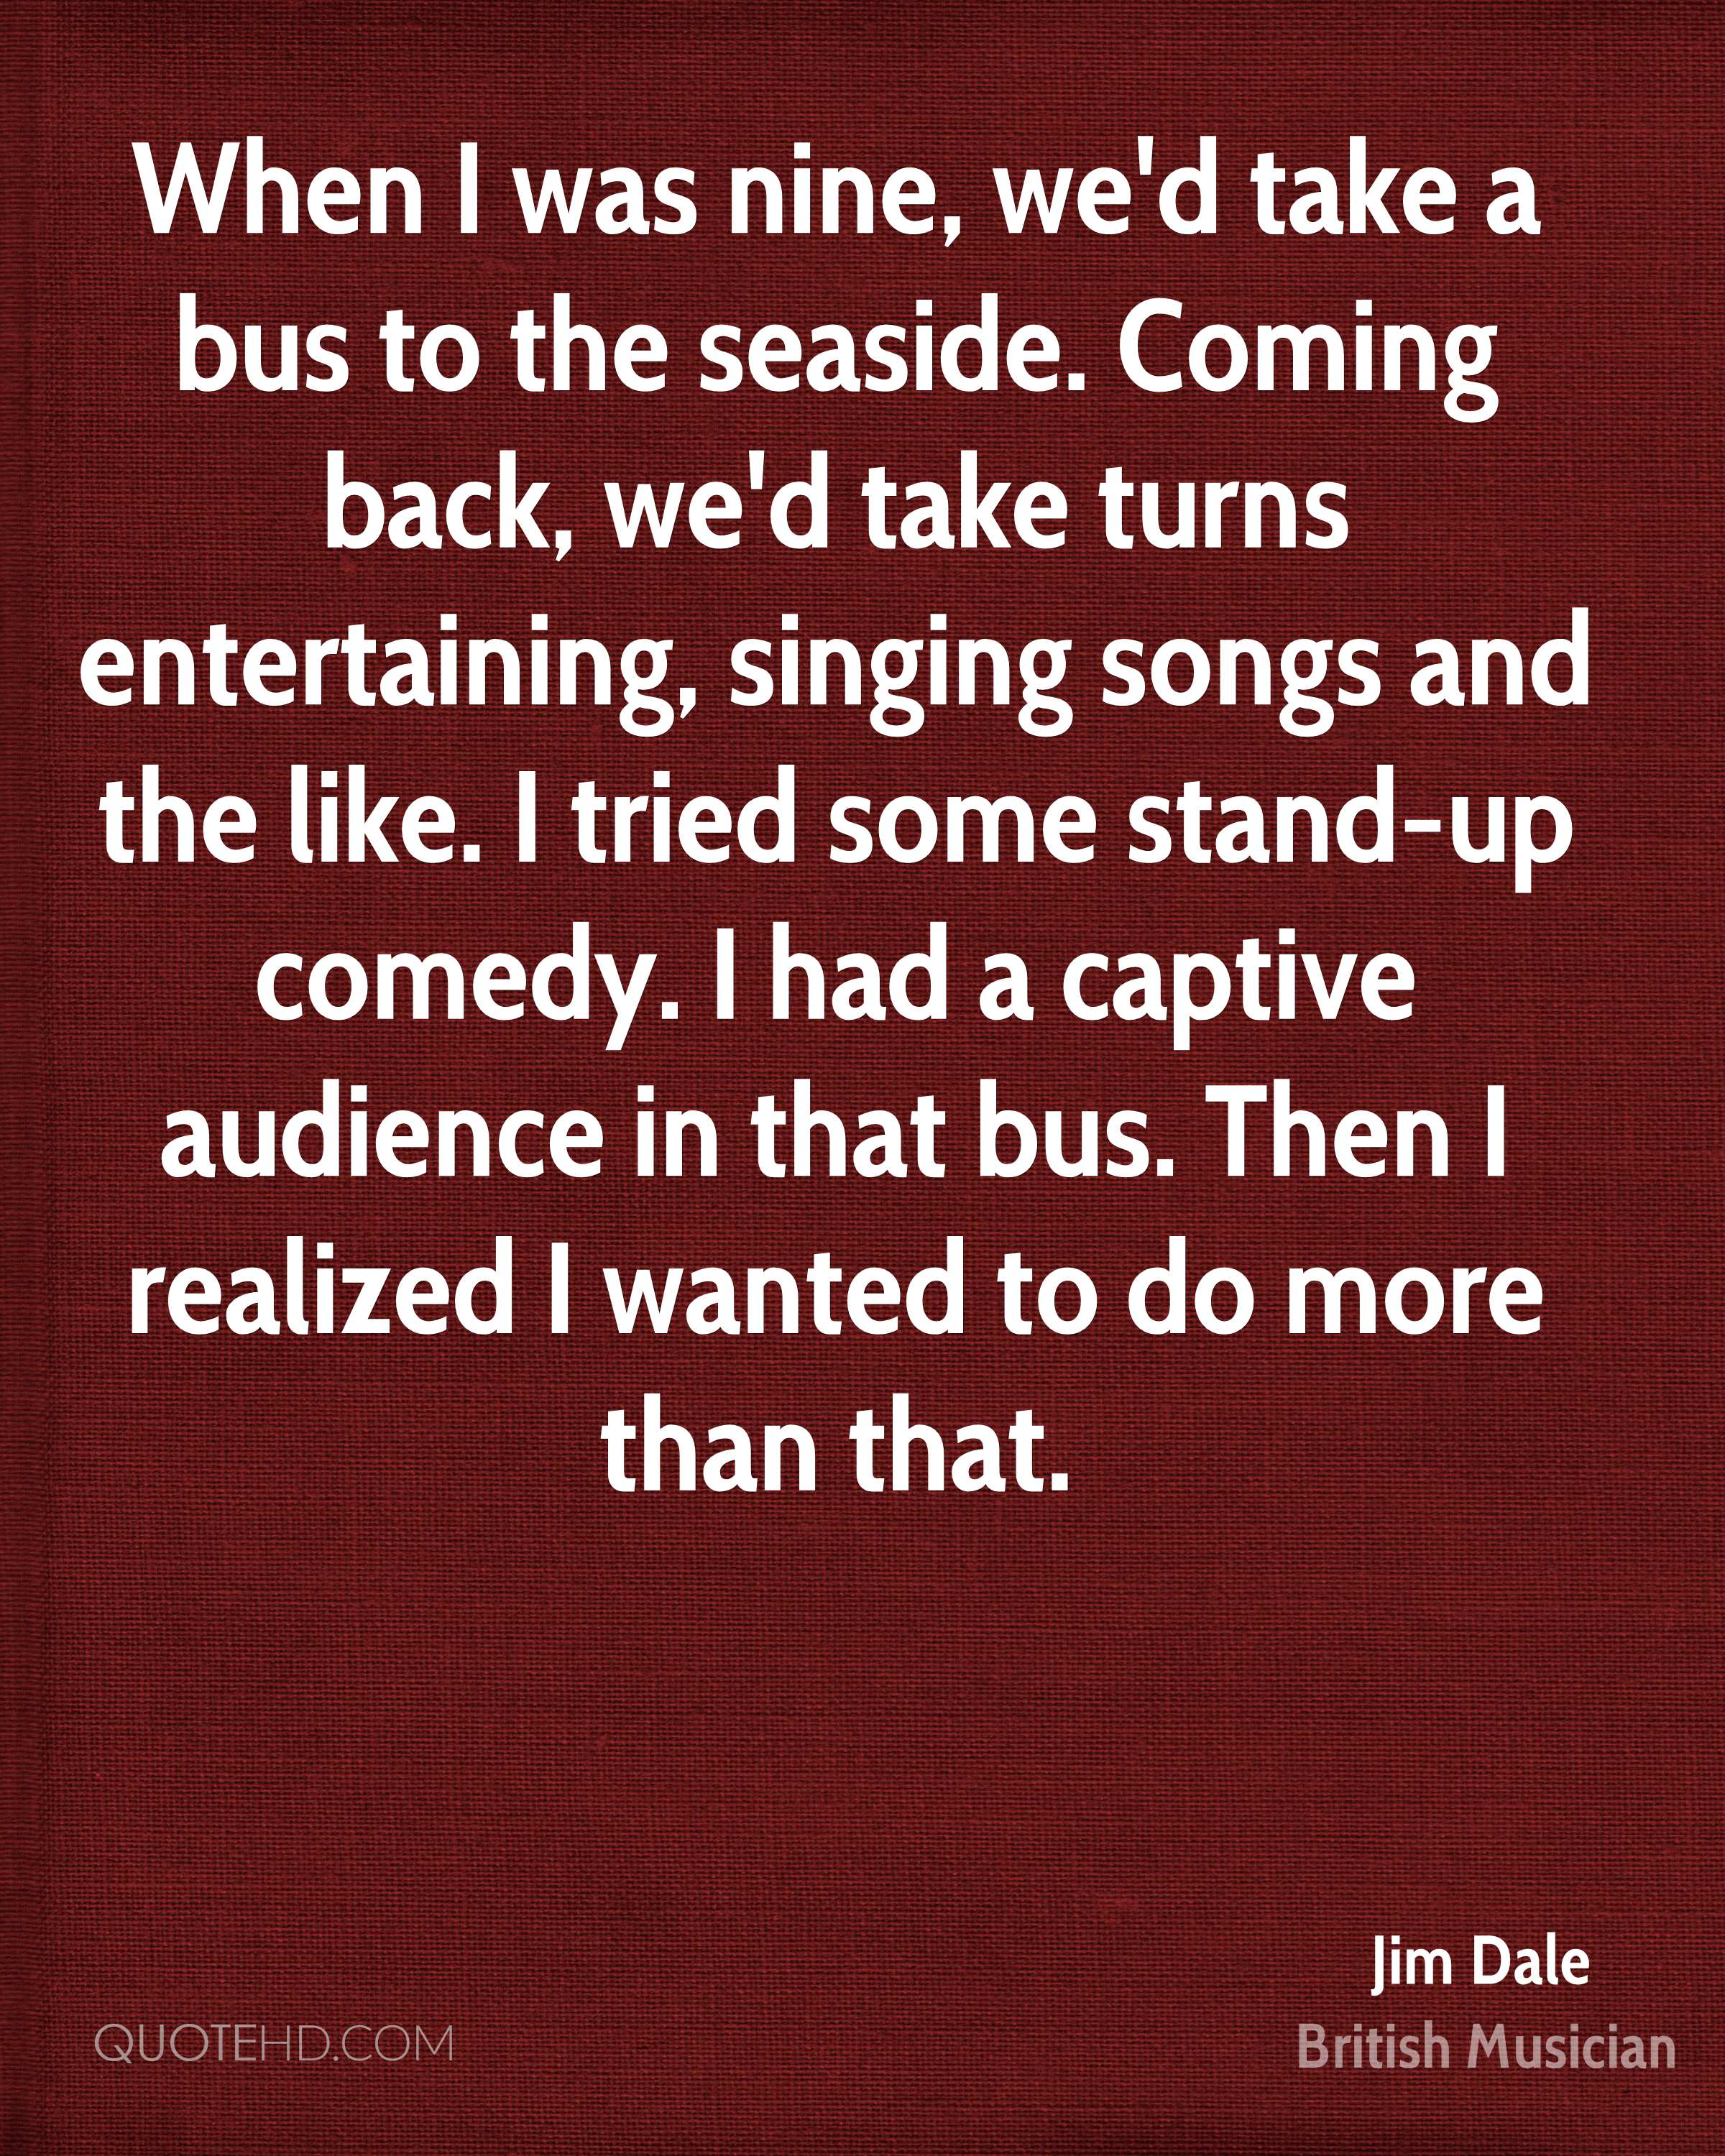 When I was nine, we'd take a bus to the seaside. Coming back, we'd take turns entertaining, singing songs and the like. I tried some stand-up comedy. I had a captive audience in that bus. Then I realized I wanted to do more than that.